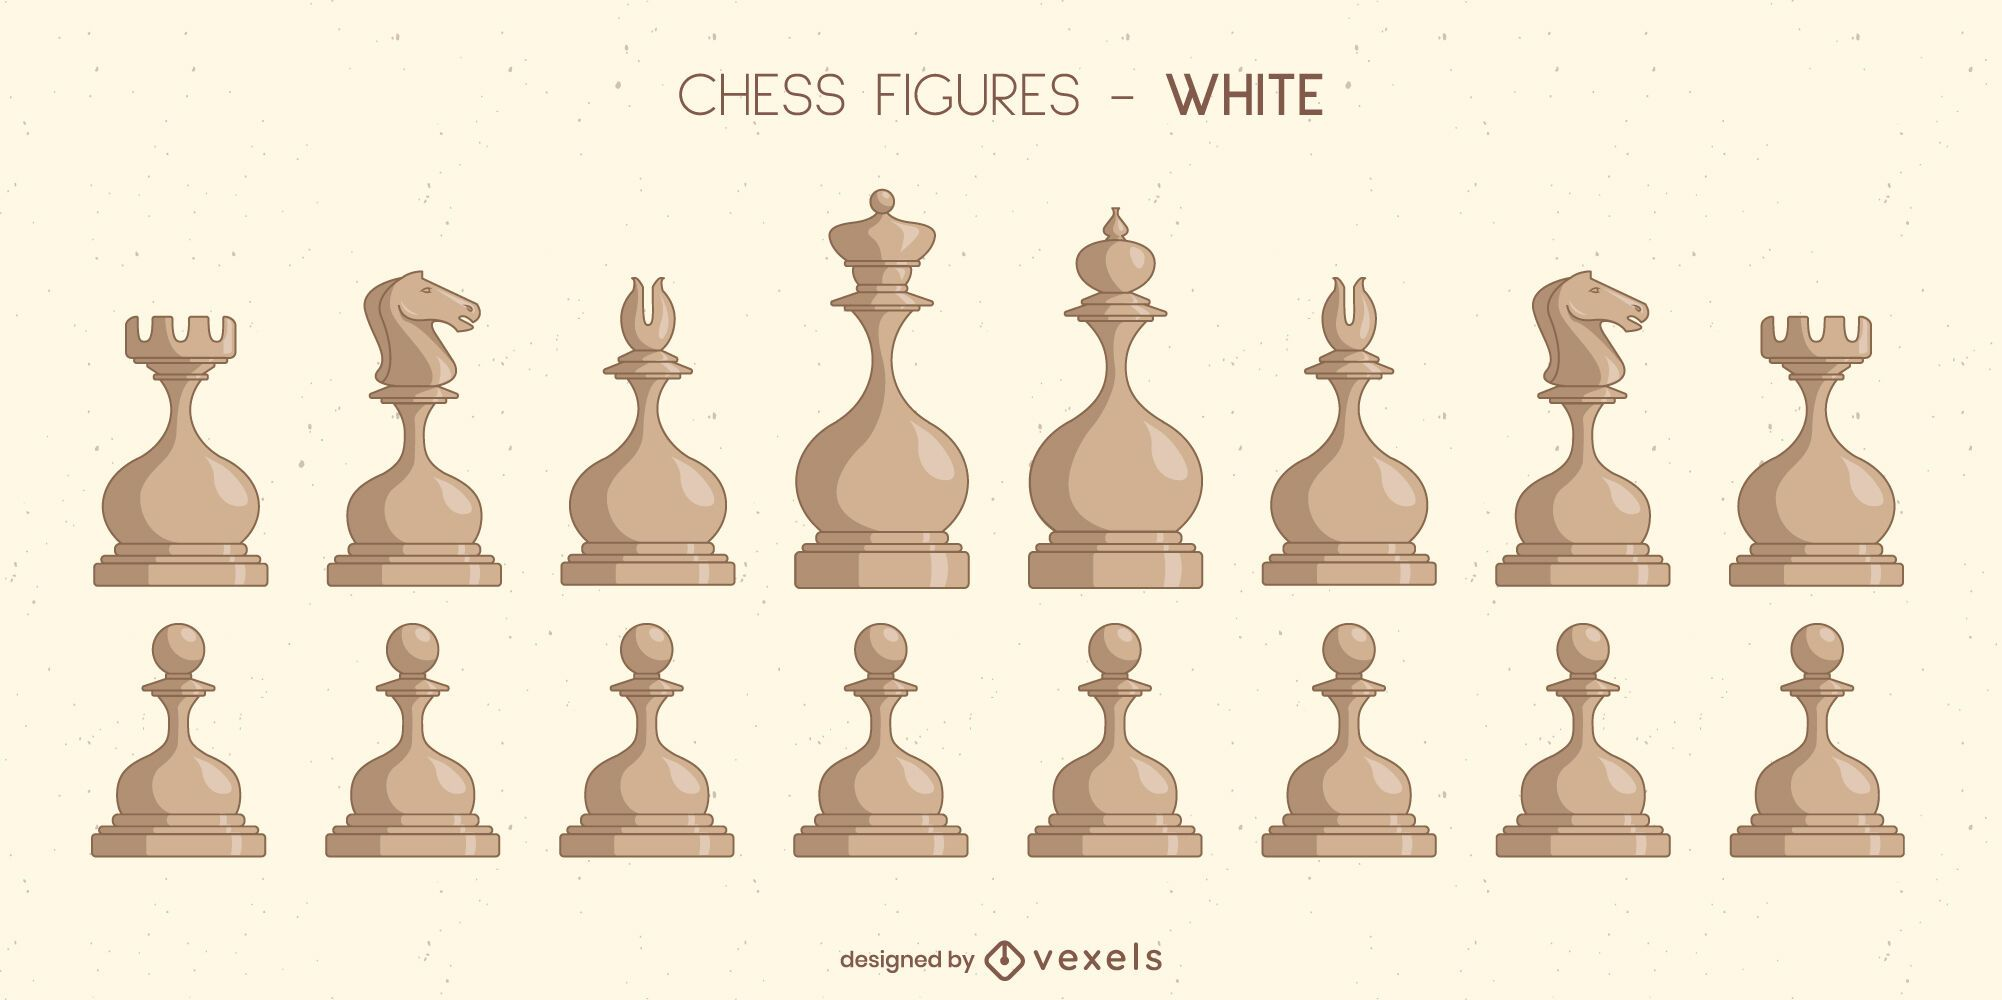 Rounded chess pieces illustration set